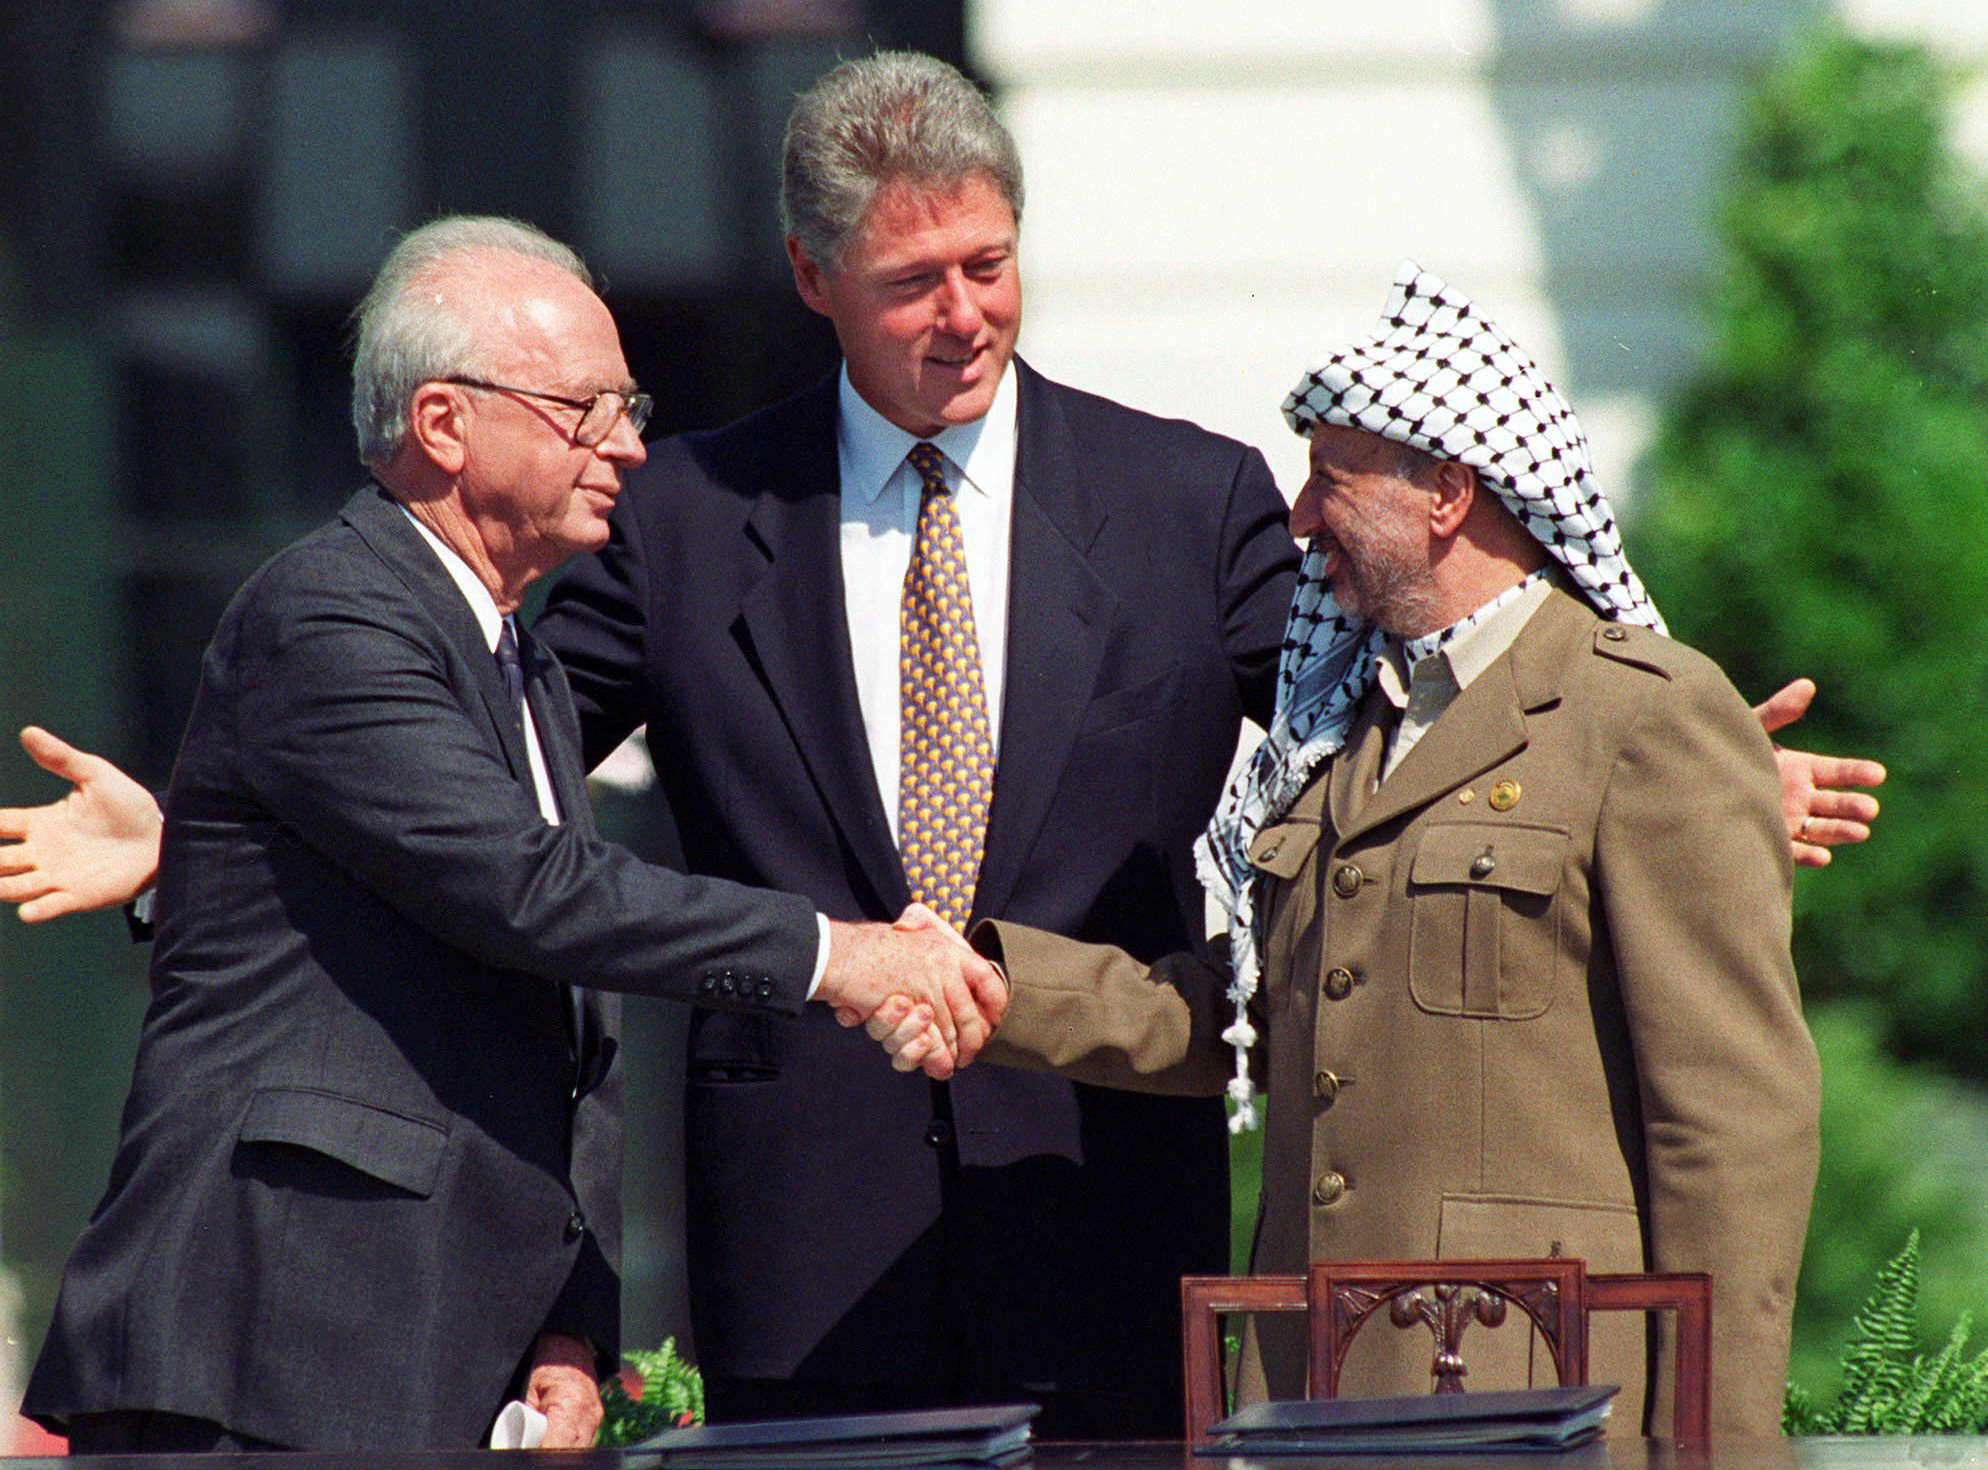 FILE - In this Sept. 13, 1993 file photo President Clinton presides over White House ceremonies marking the signing of the peace accord between Israel and the Palestinians with Israeli Prime Minister Yitzhak Rabin, left, and Palestinian leader Yasser Arafat, right, in Washington. Two years after the groundbreaking handshake on the White House lawn between the two men, Rabin was killed by an Israeli extremist opposed to peace negotiations with the Palestinians at a rally promoting the accords. (AP Photo/Ron Edmonds, File)